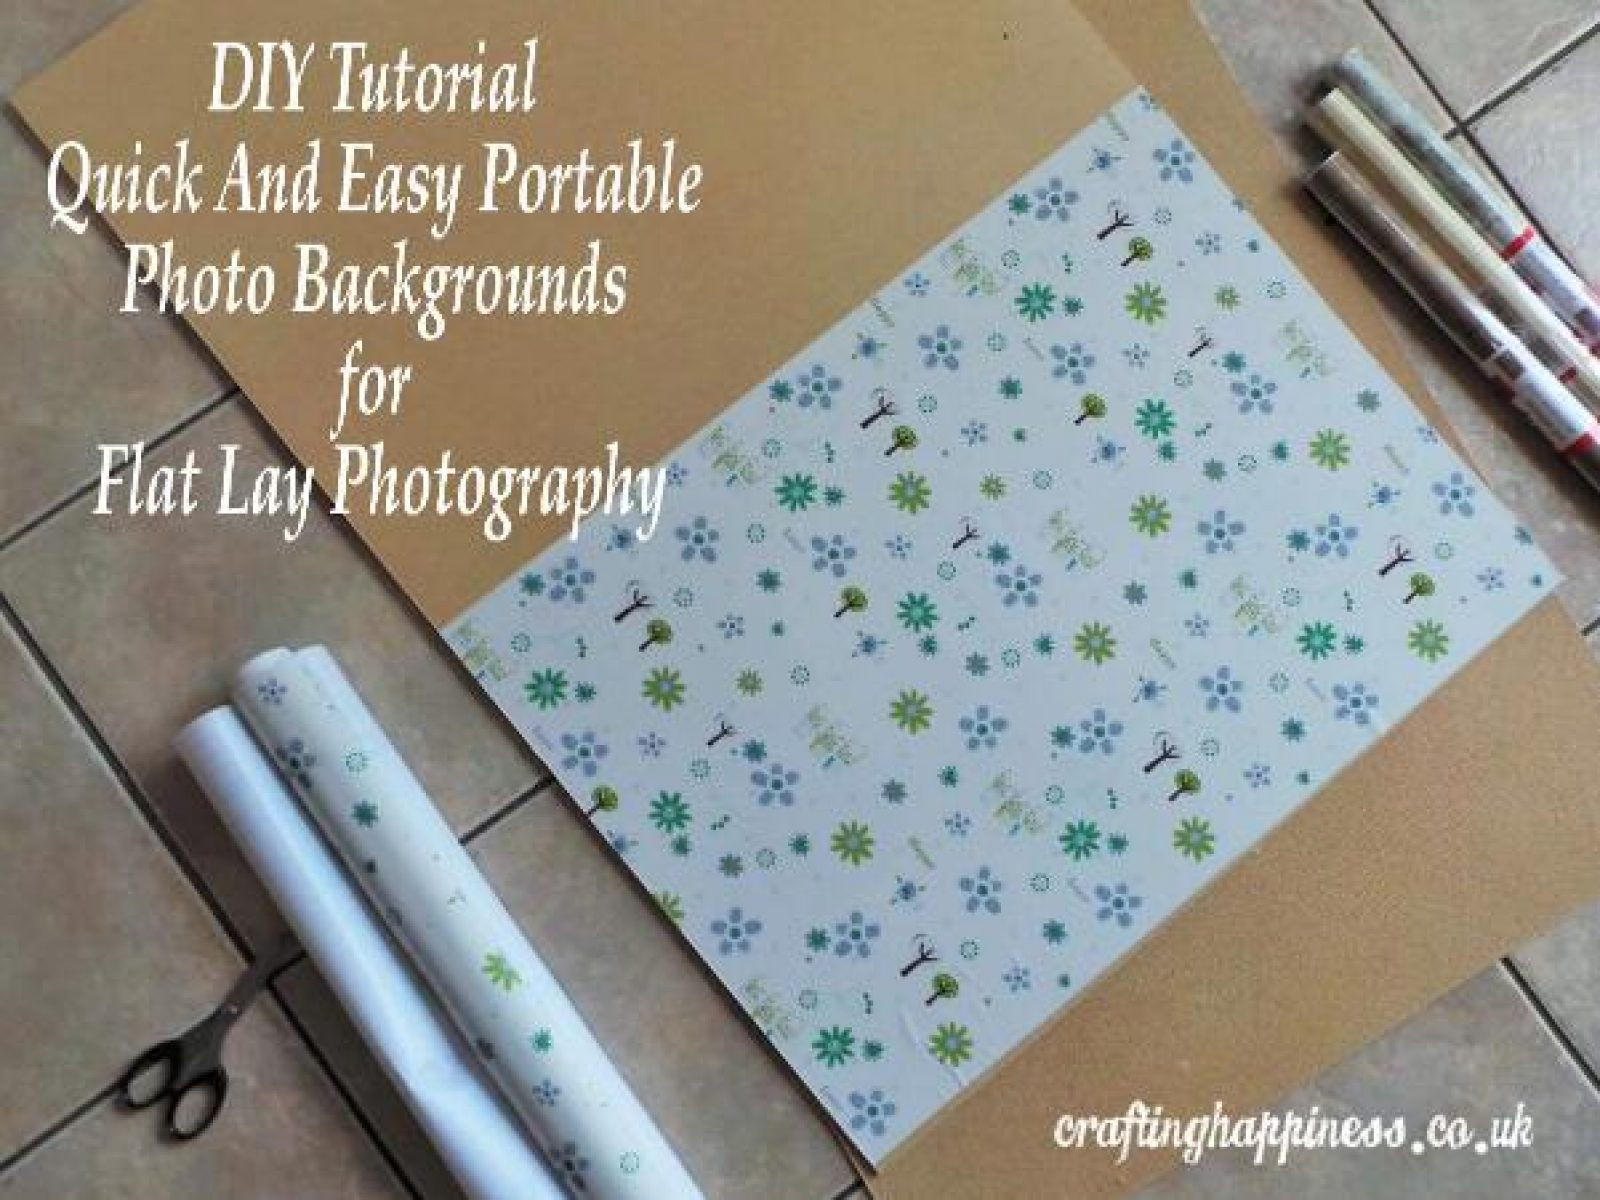 DIY Tutorial Quick And Easy Portable Photo Backgrounds for Flat Lay Photography